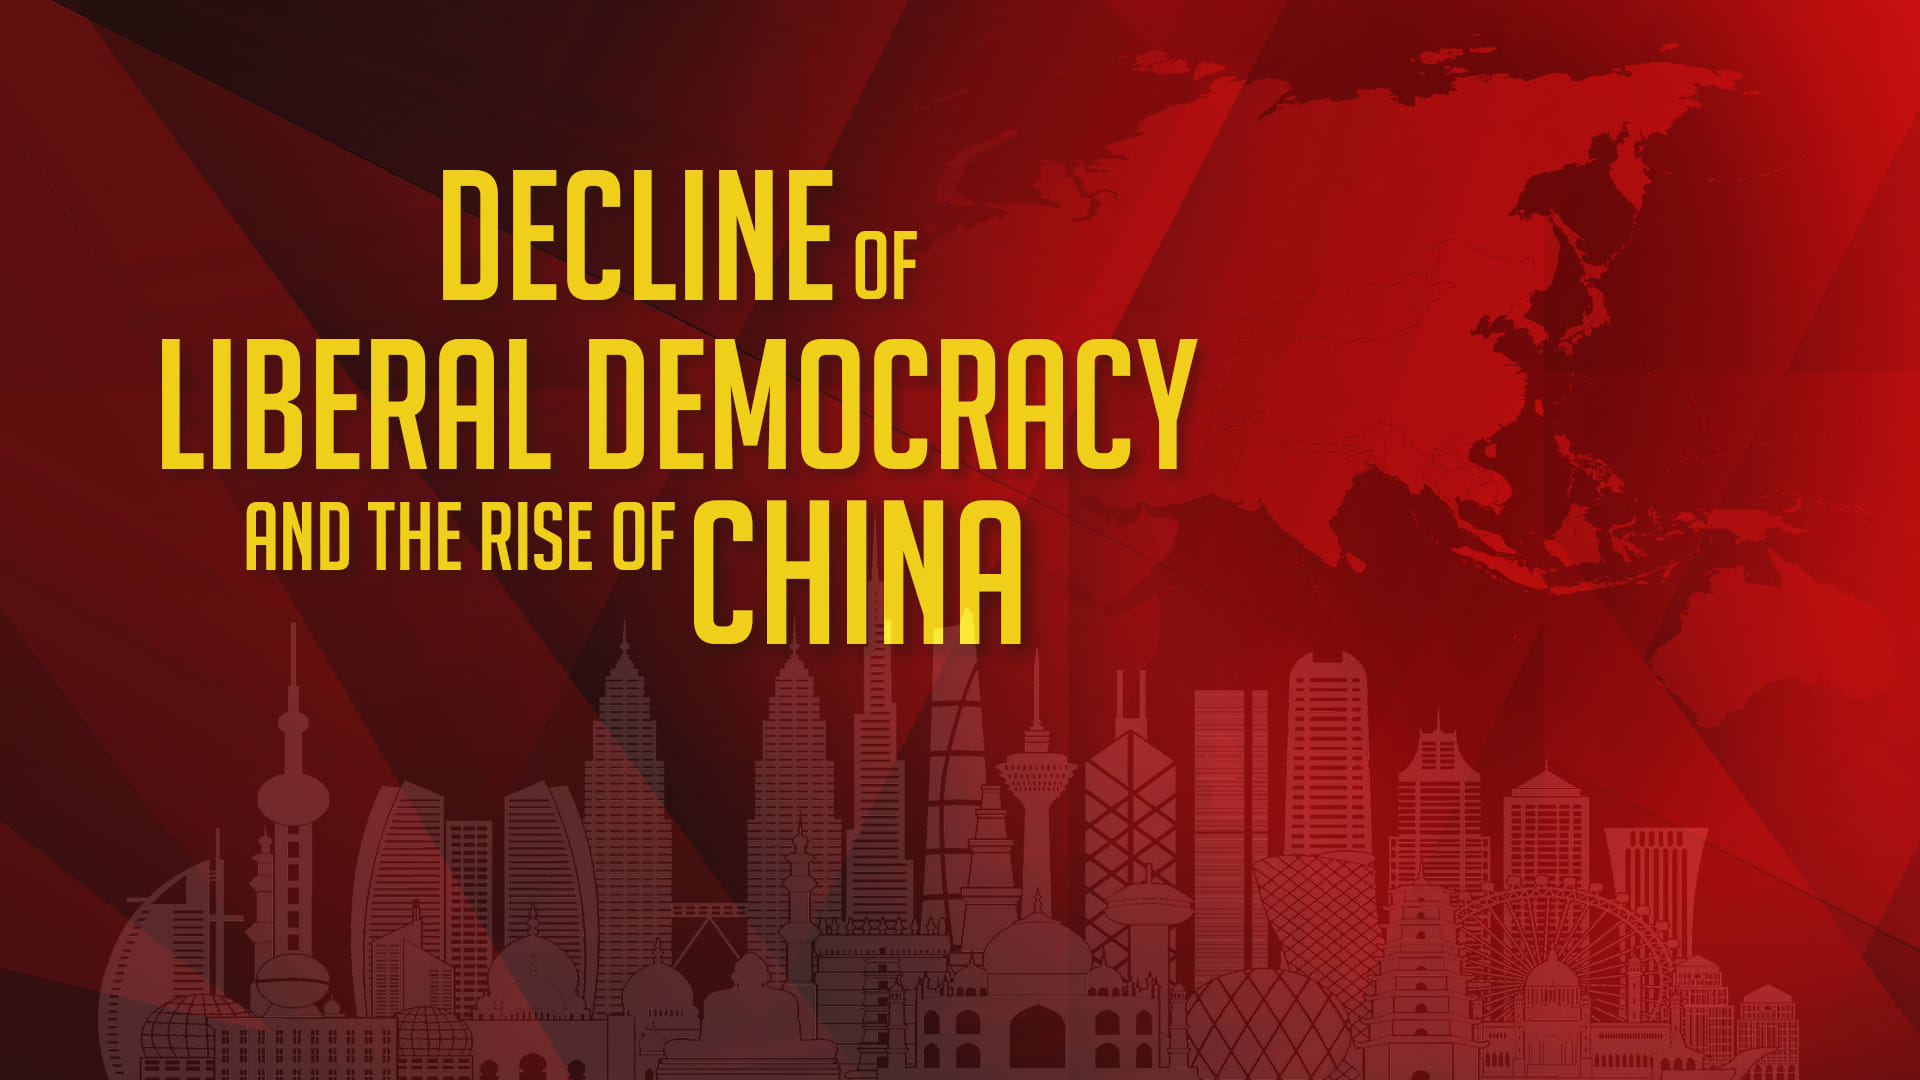 Decline of Liberal Democracy and the Rise of China: Has ASEAN given in to the temptation?""